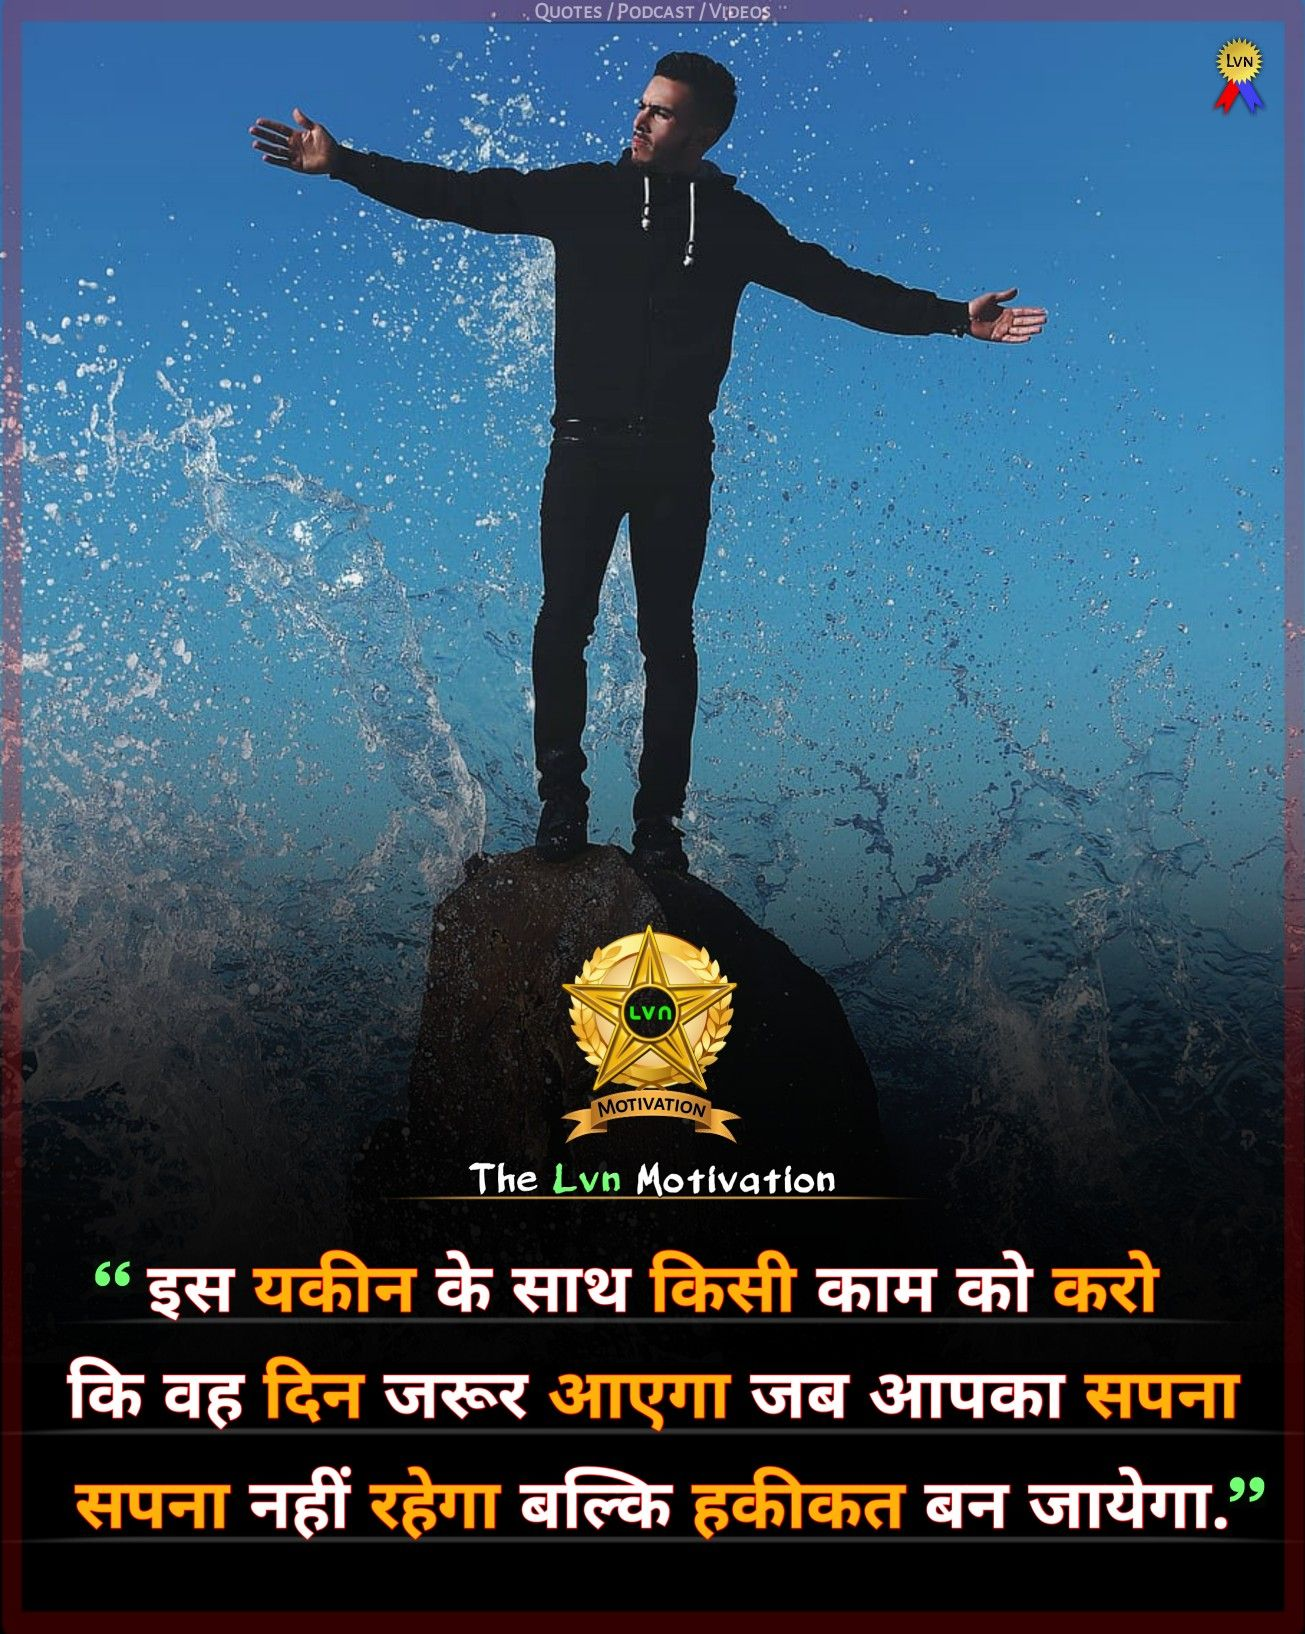 Positive Thinking Quotes In Hindi Thinking Quotes Inspirational Quotes Disney Motivational Picture Quotes